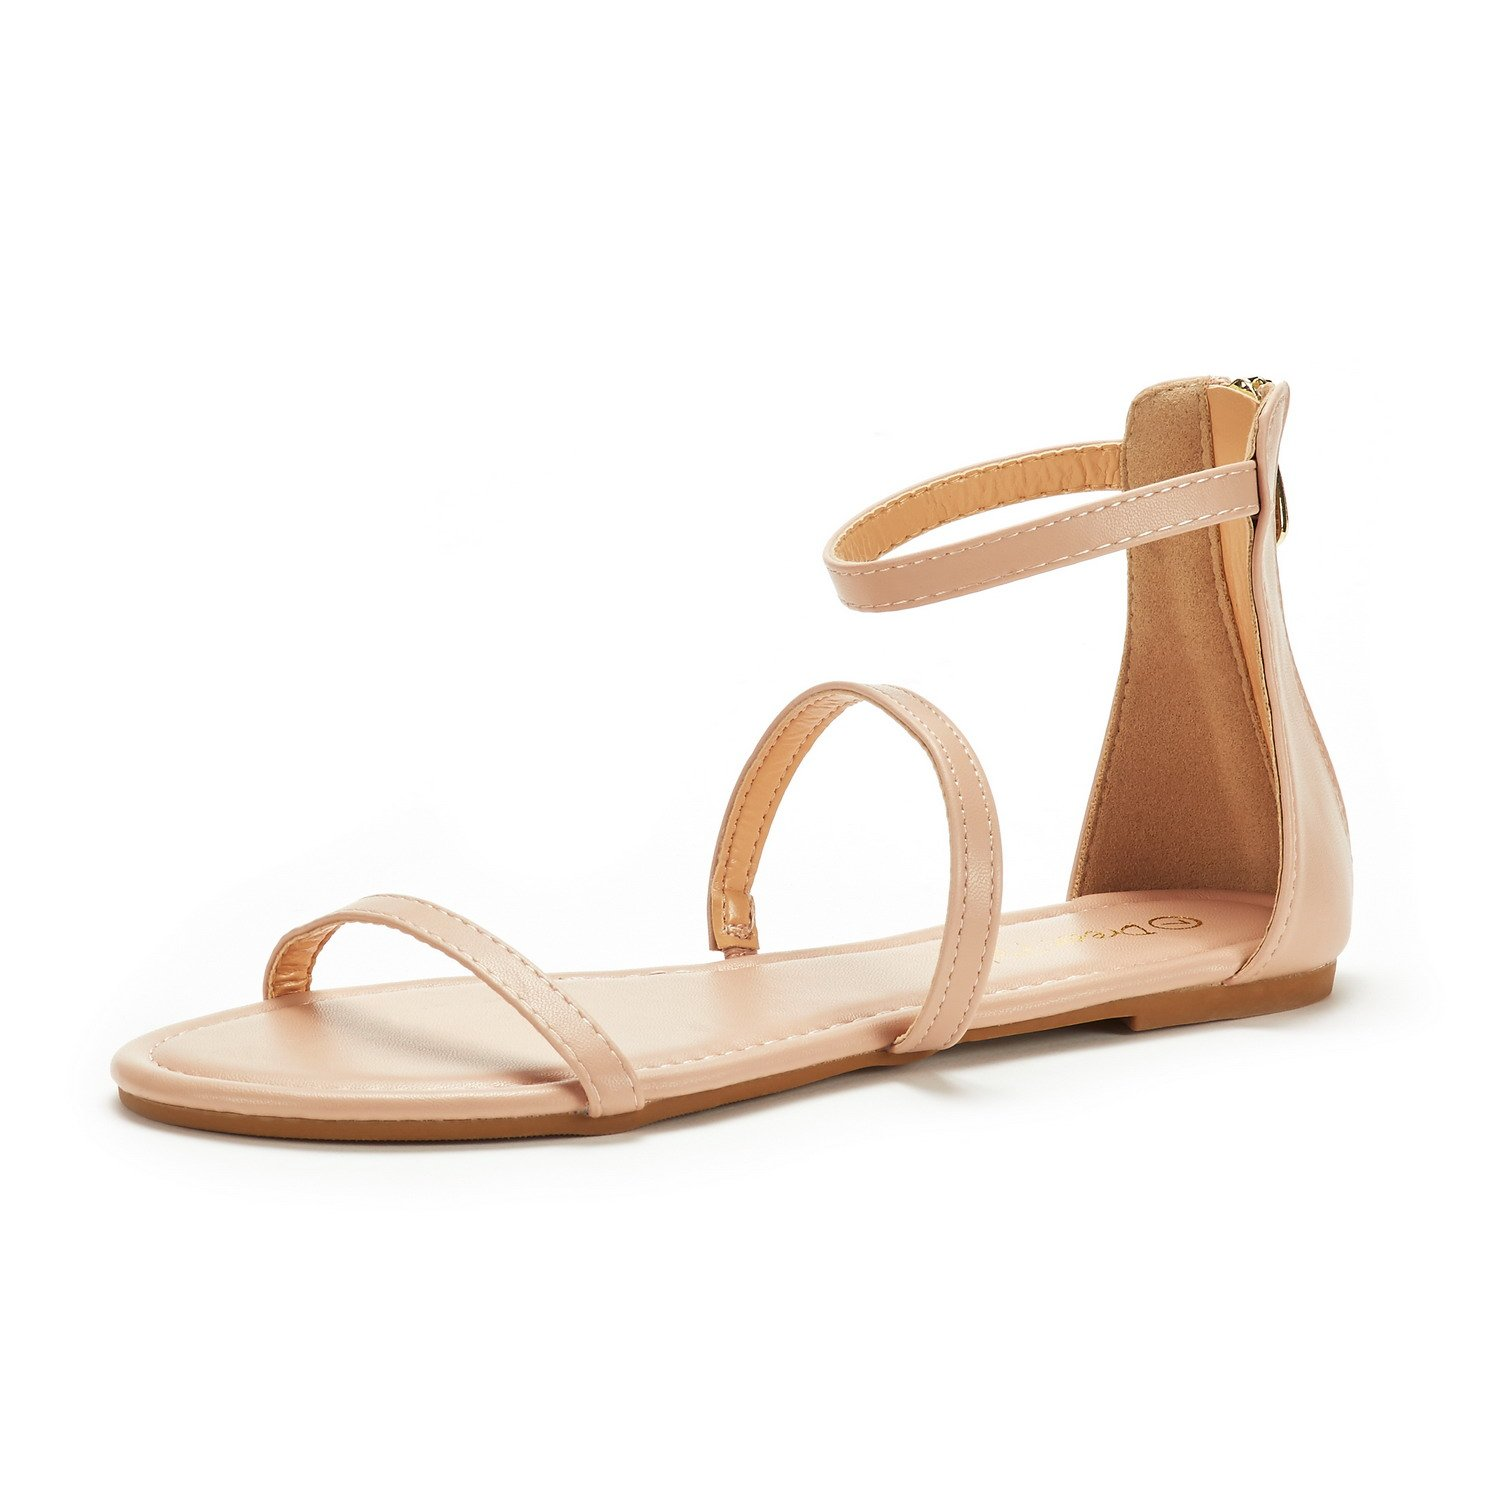 DREAM PAIRS Women's Athena_Low Nude Pu Fashion Gladiator Design Ankle Strap Flat Sandals Size 10 M US